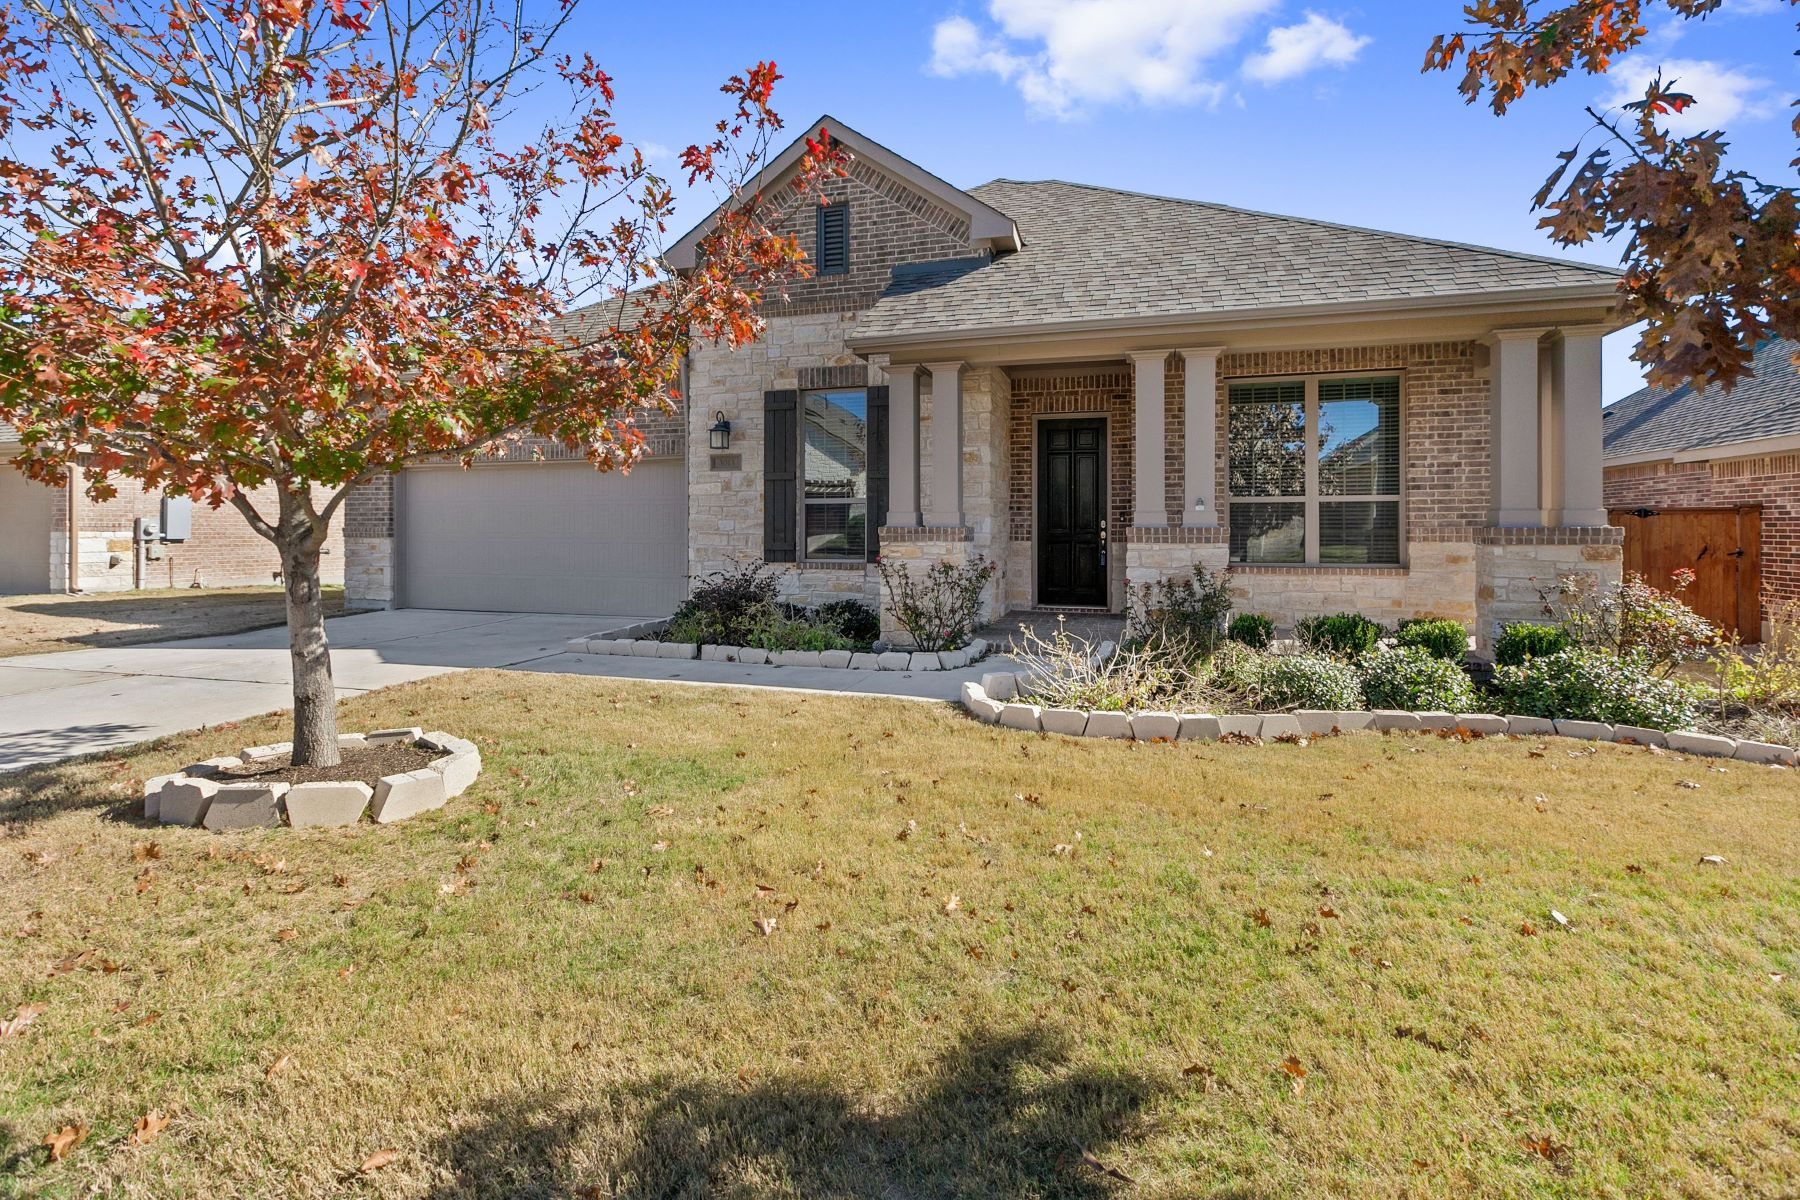 Single Family Homes for Active at 3013 Columbus Loop, Round Rock, TX 78665 3013 Columbus Loop Round Rock, Texas 78665 United States